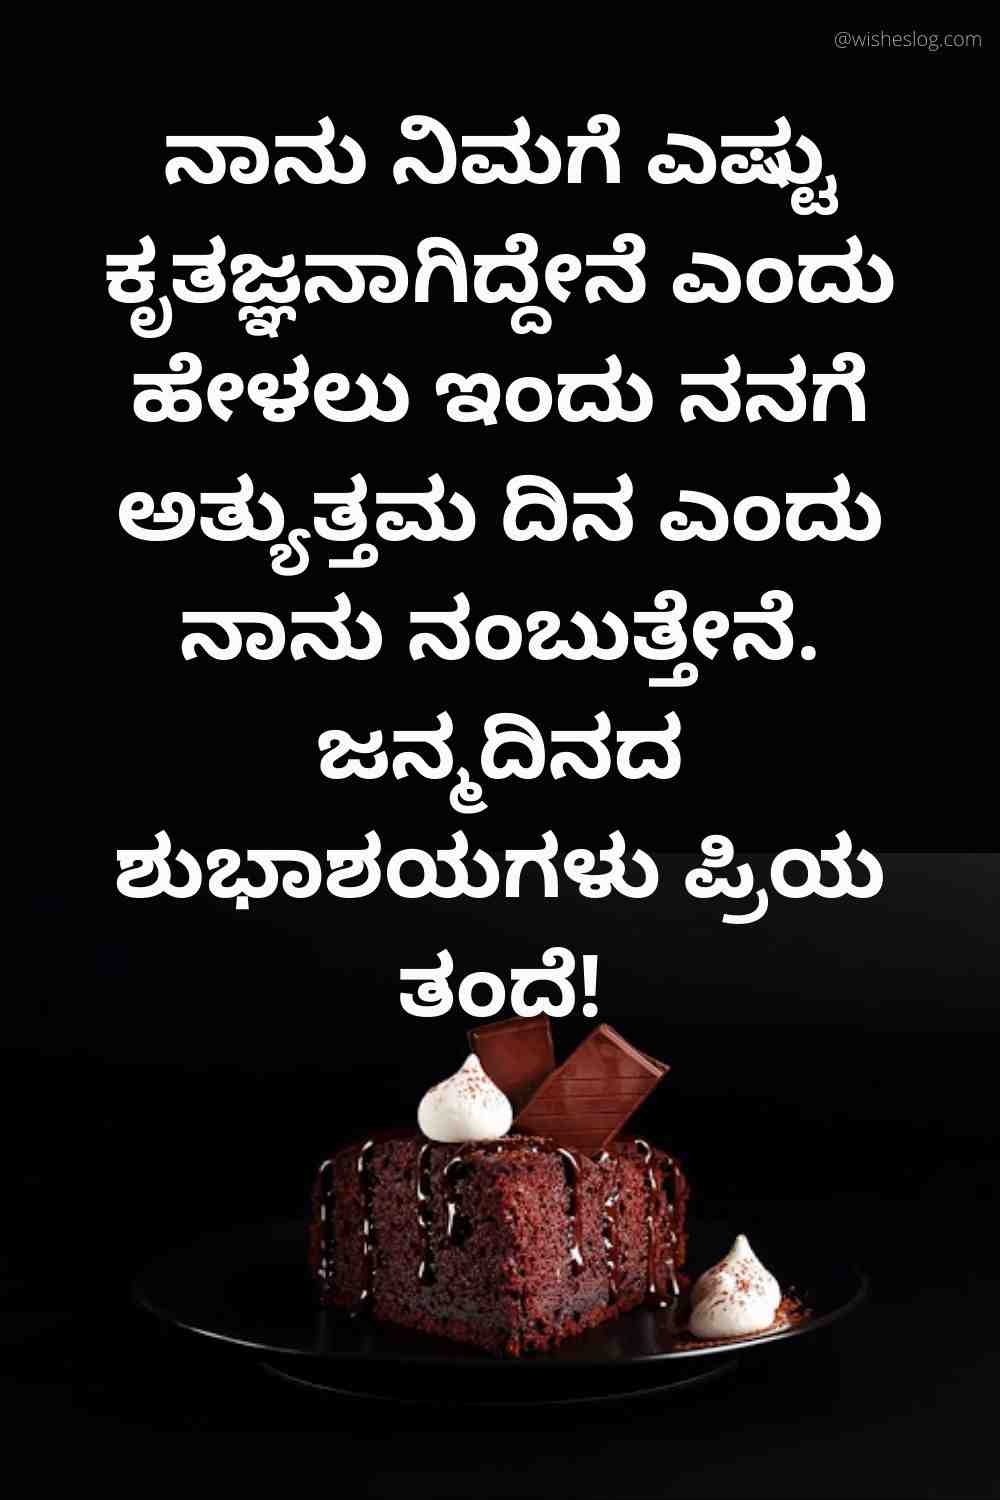 birthday wishes for father in kannada